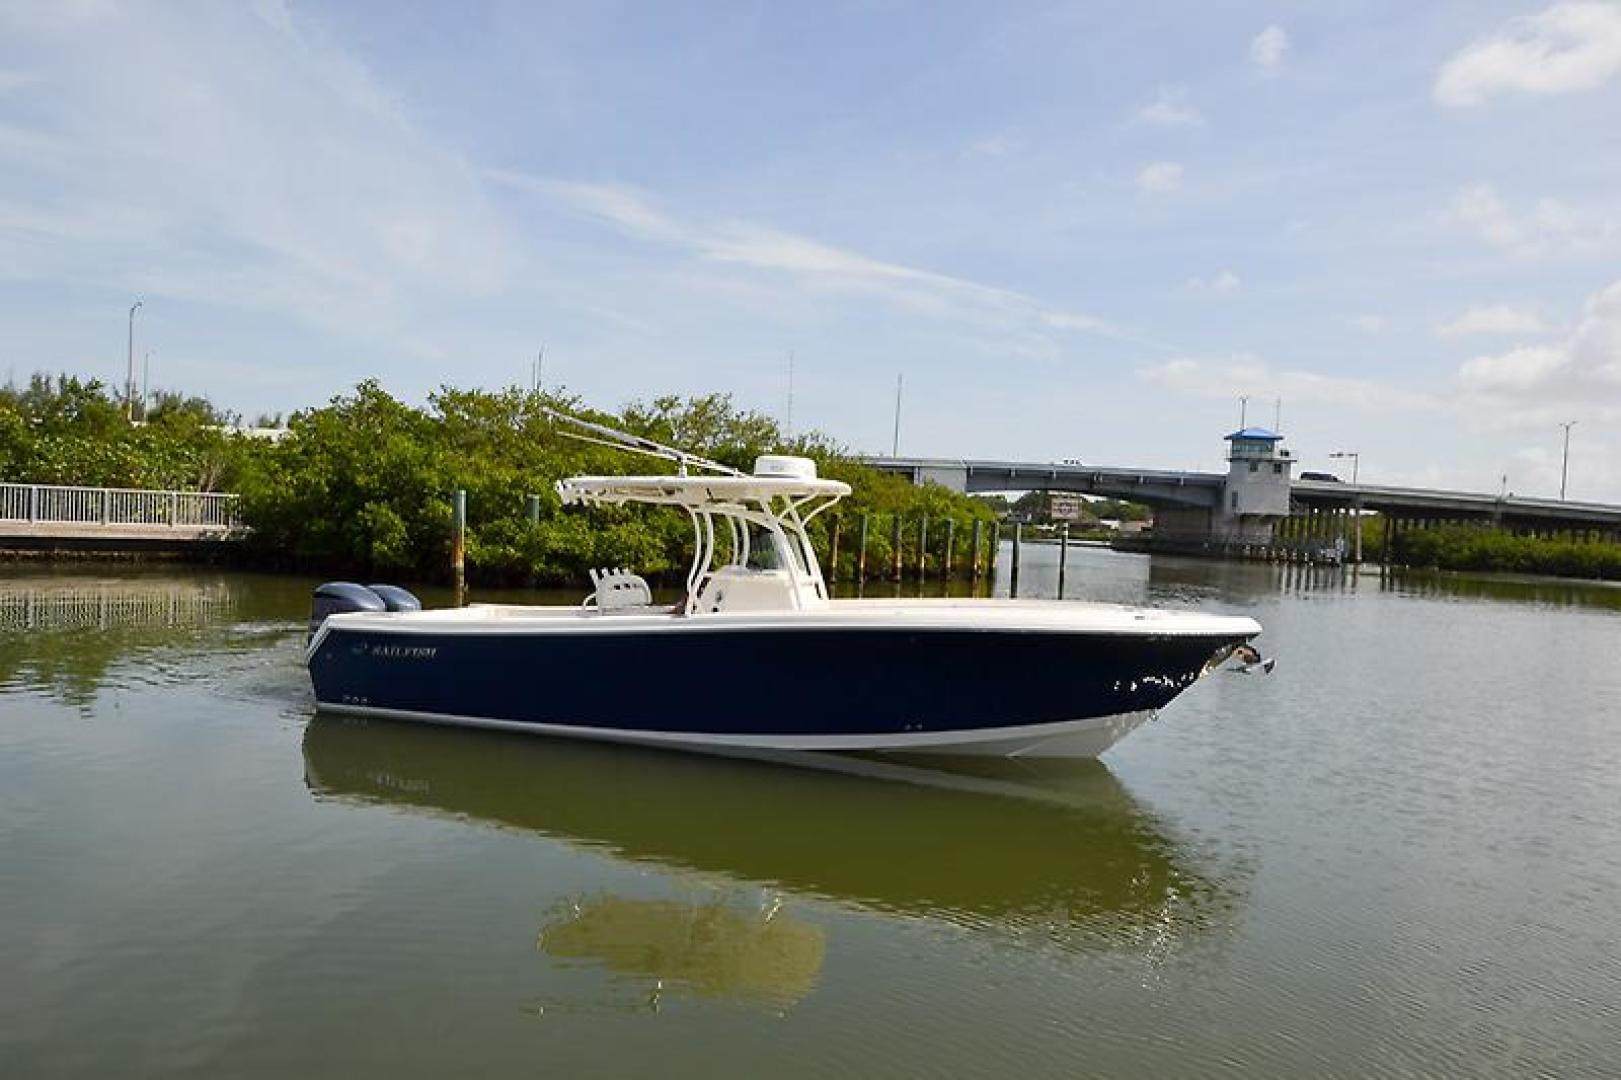 2014 Sailfish 320 cc-13.jpg